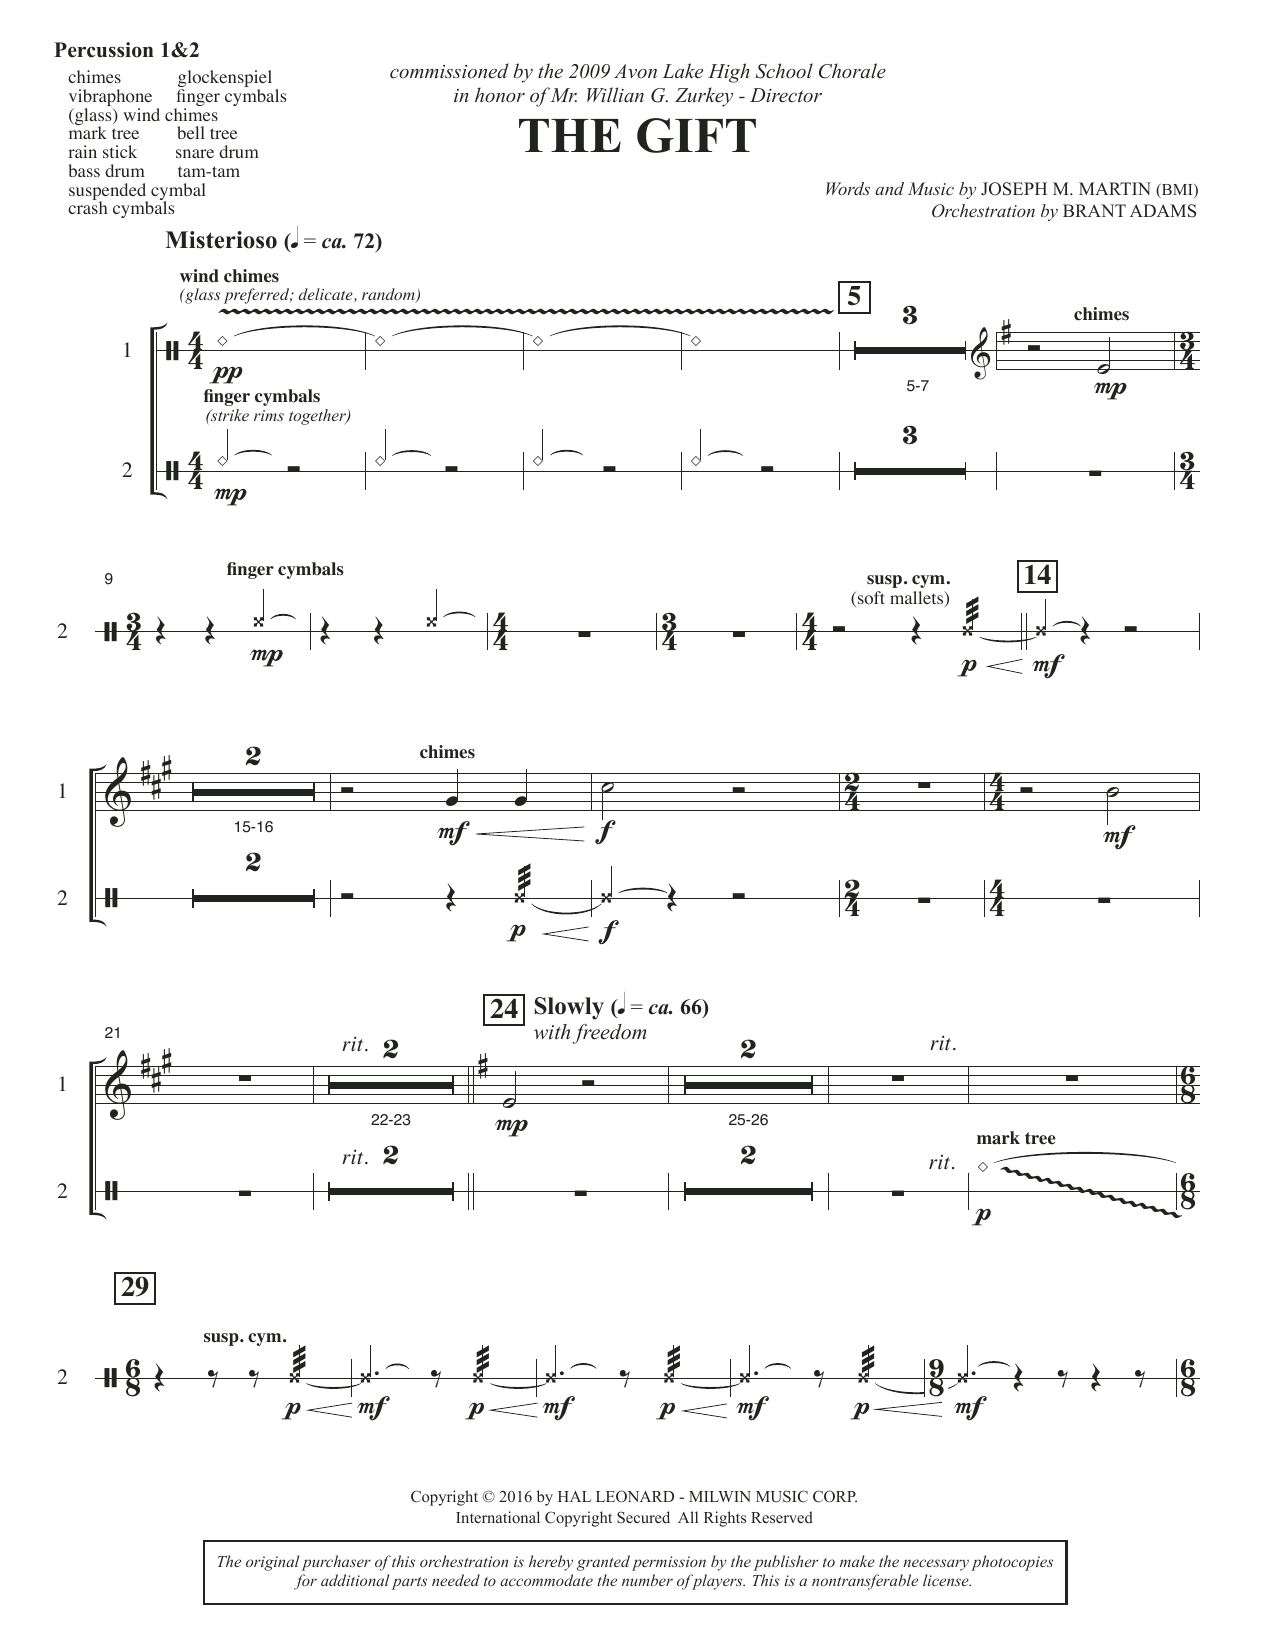 The Gift - Percussion 1 & 2